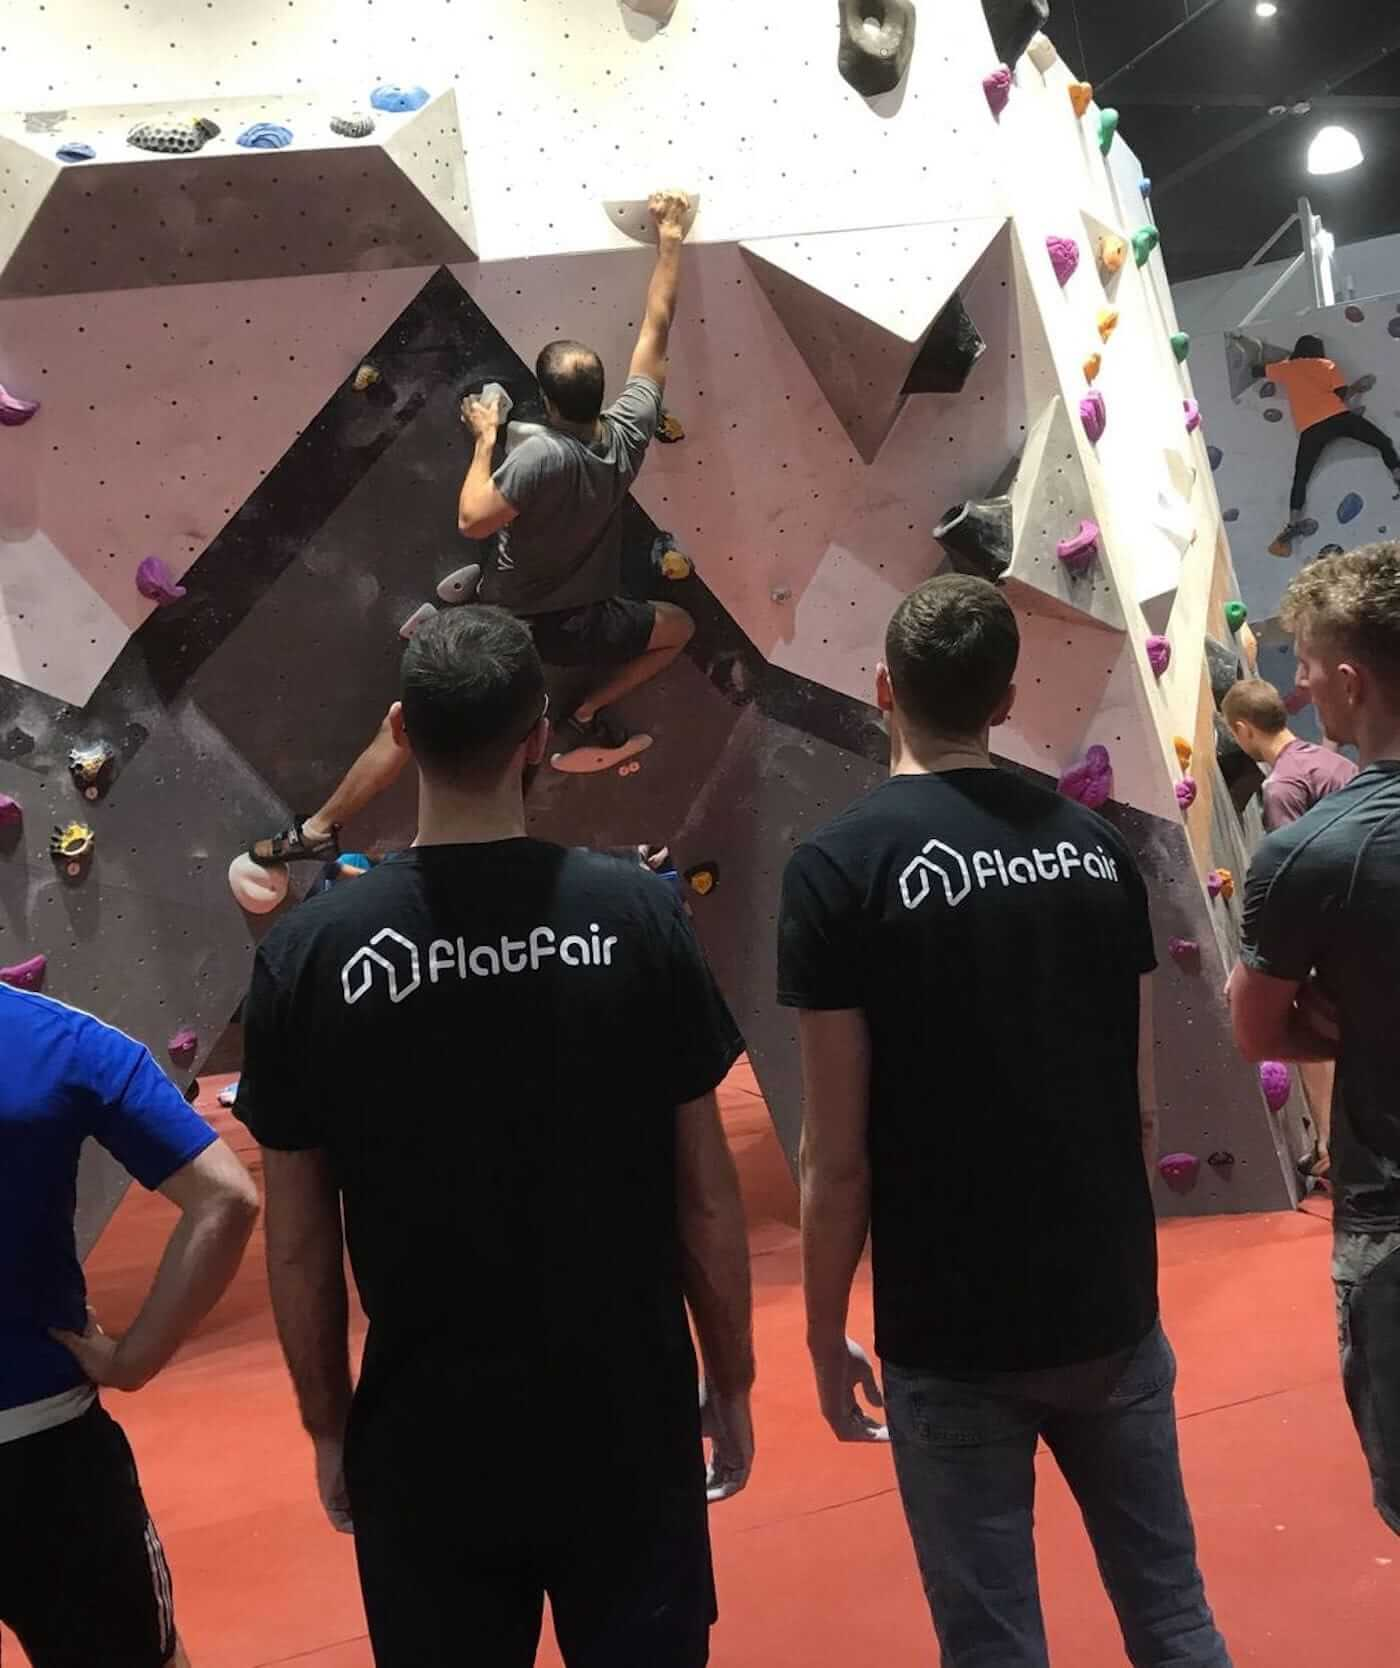 Male colleagues rock climbing with flatfair tshirts